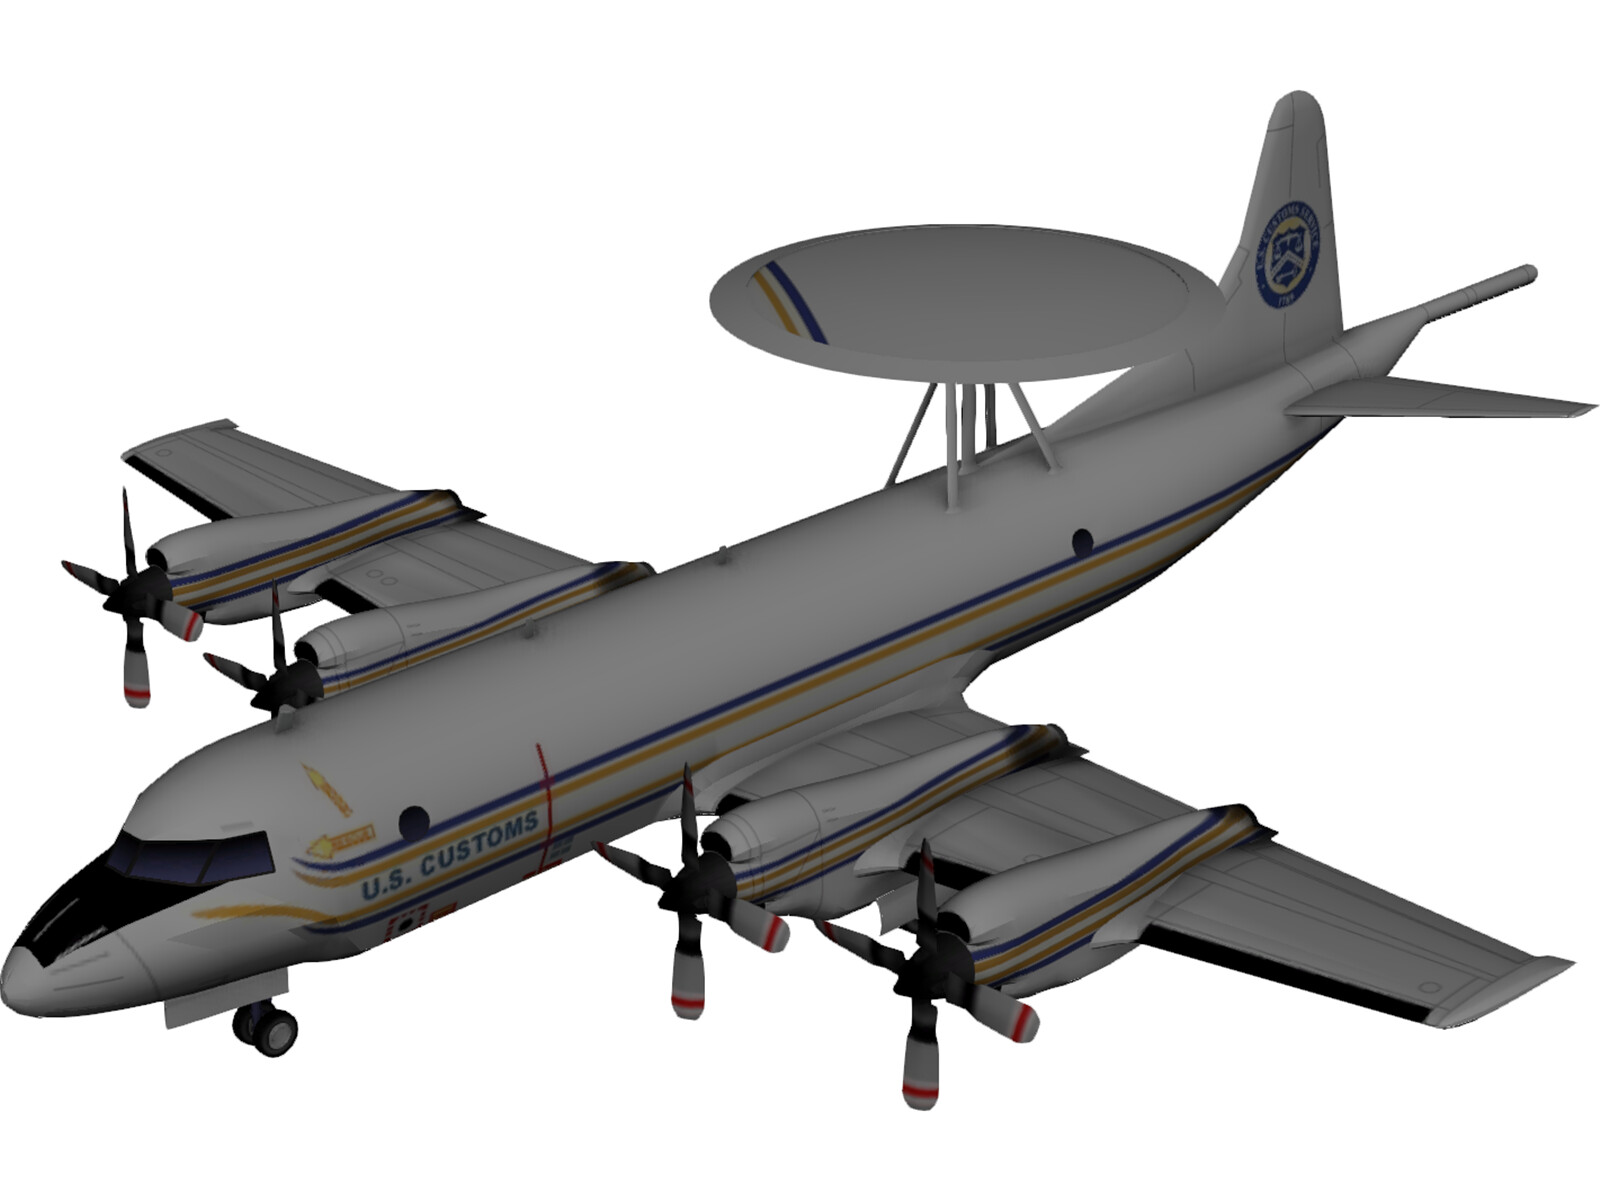 Lockheed P-3 Orion US Customs 3D Model